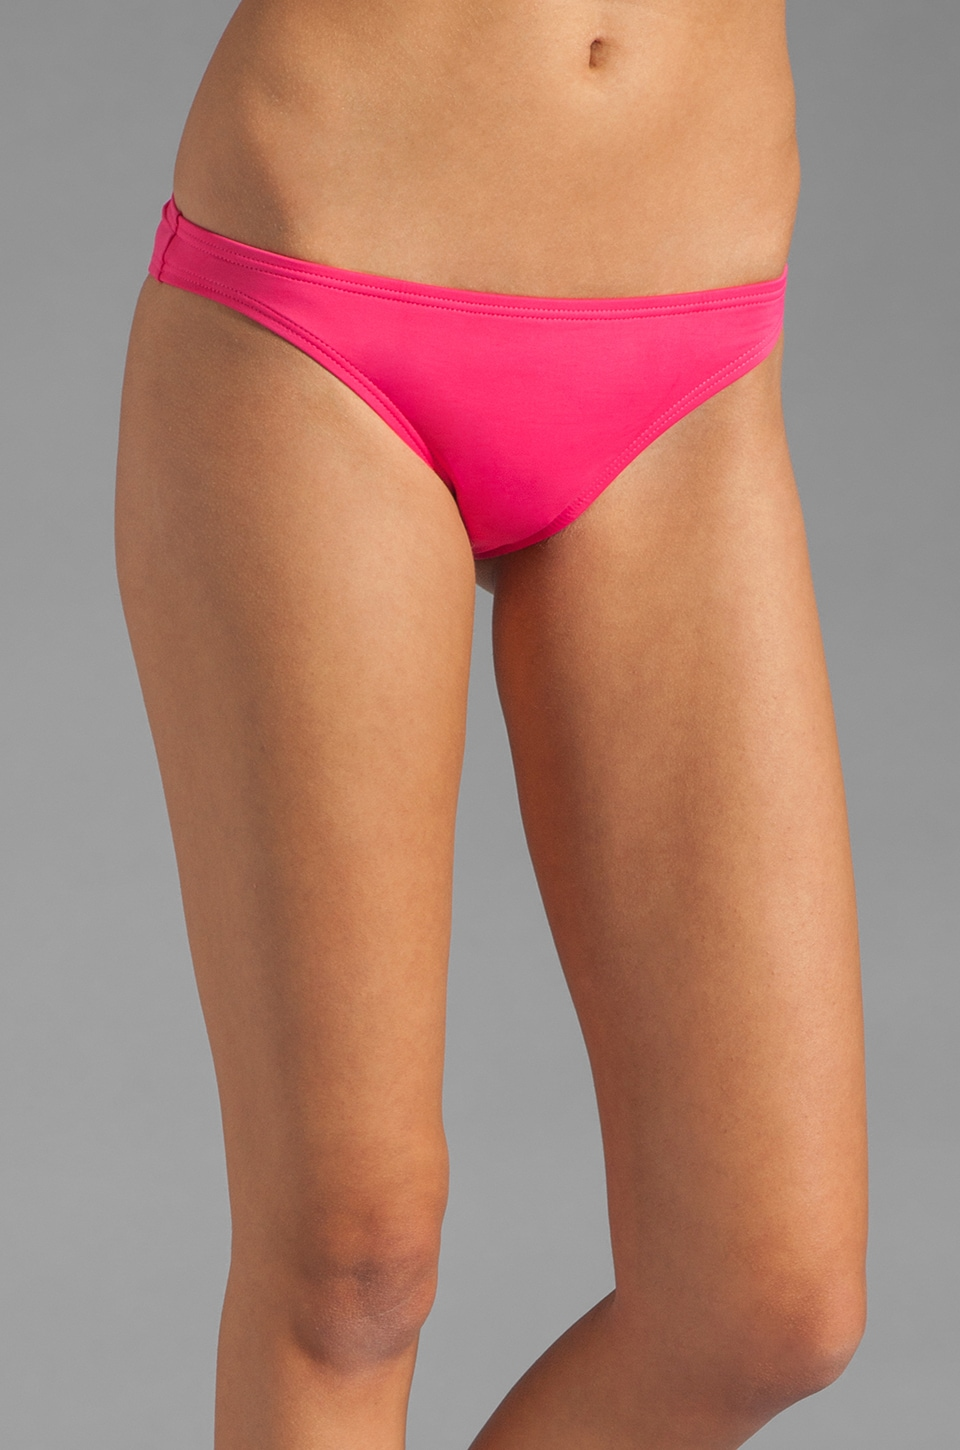 Juicy Couture Miss Divine Hearts Button Flirt Bottom in Pink Berry